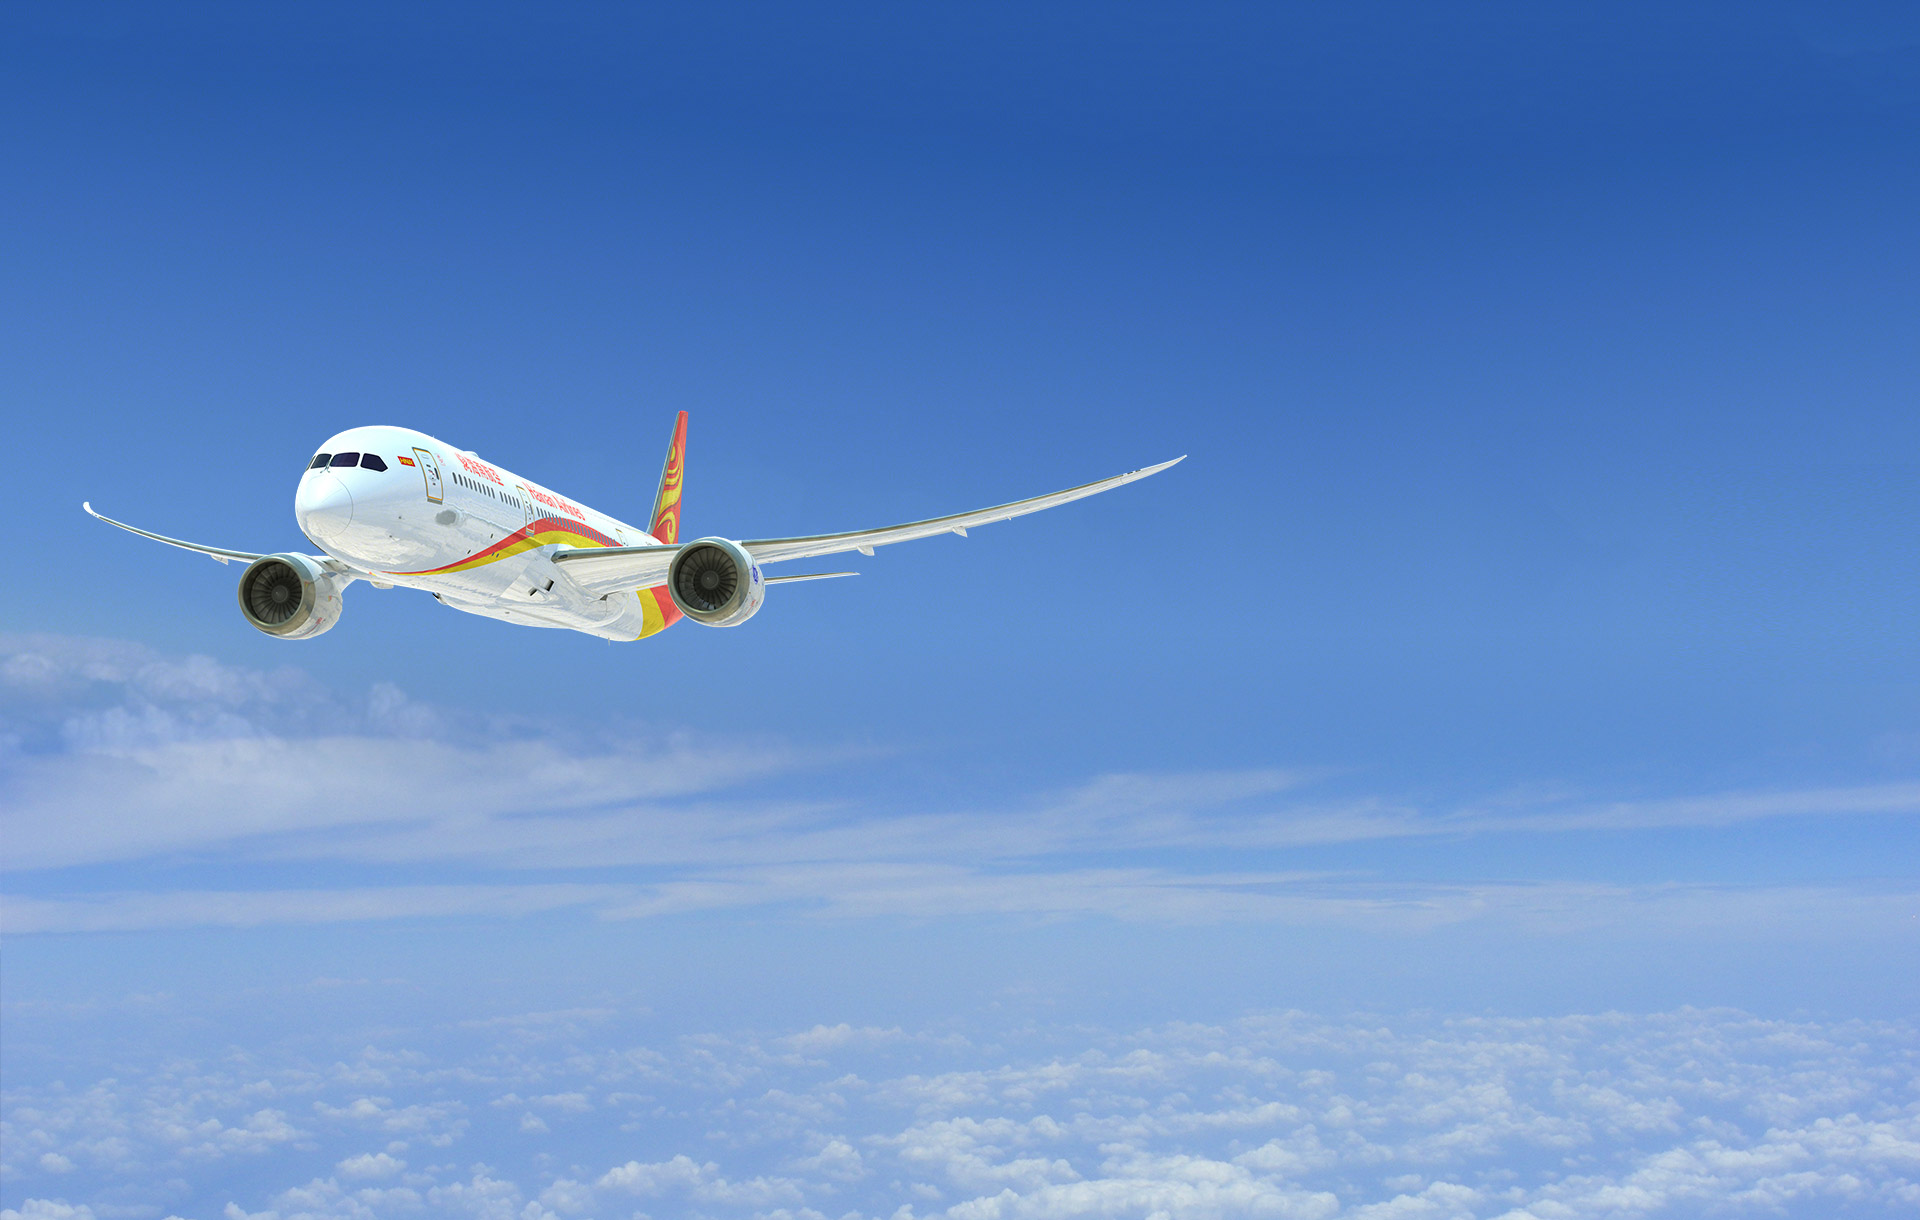 Hainan airlines boeing 787 9 dreamliner experience the all new boeing 787 9 dreamliner publicscrutiny Images